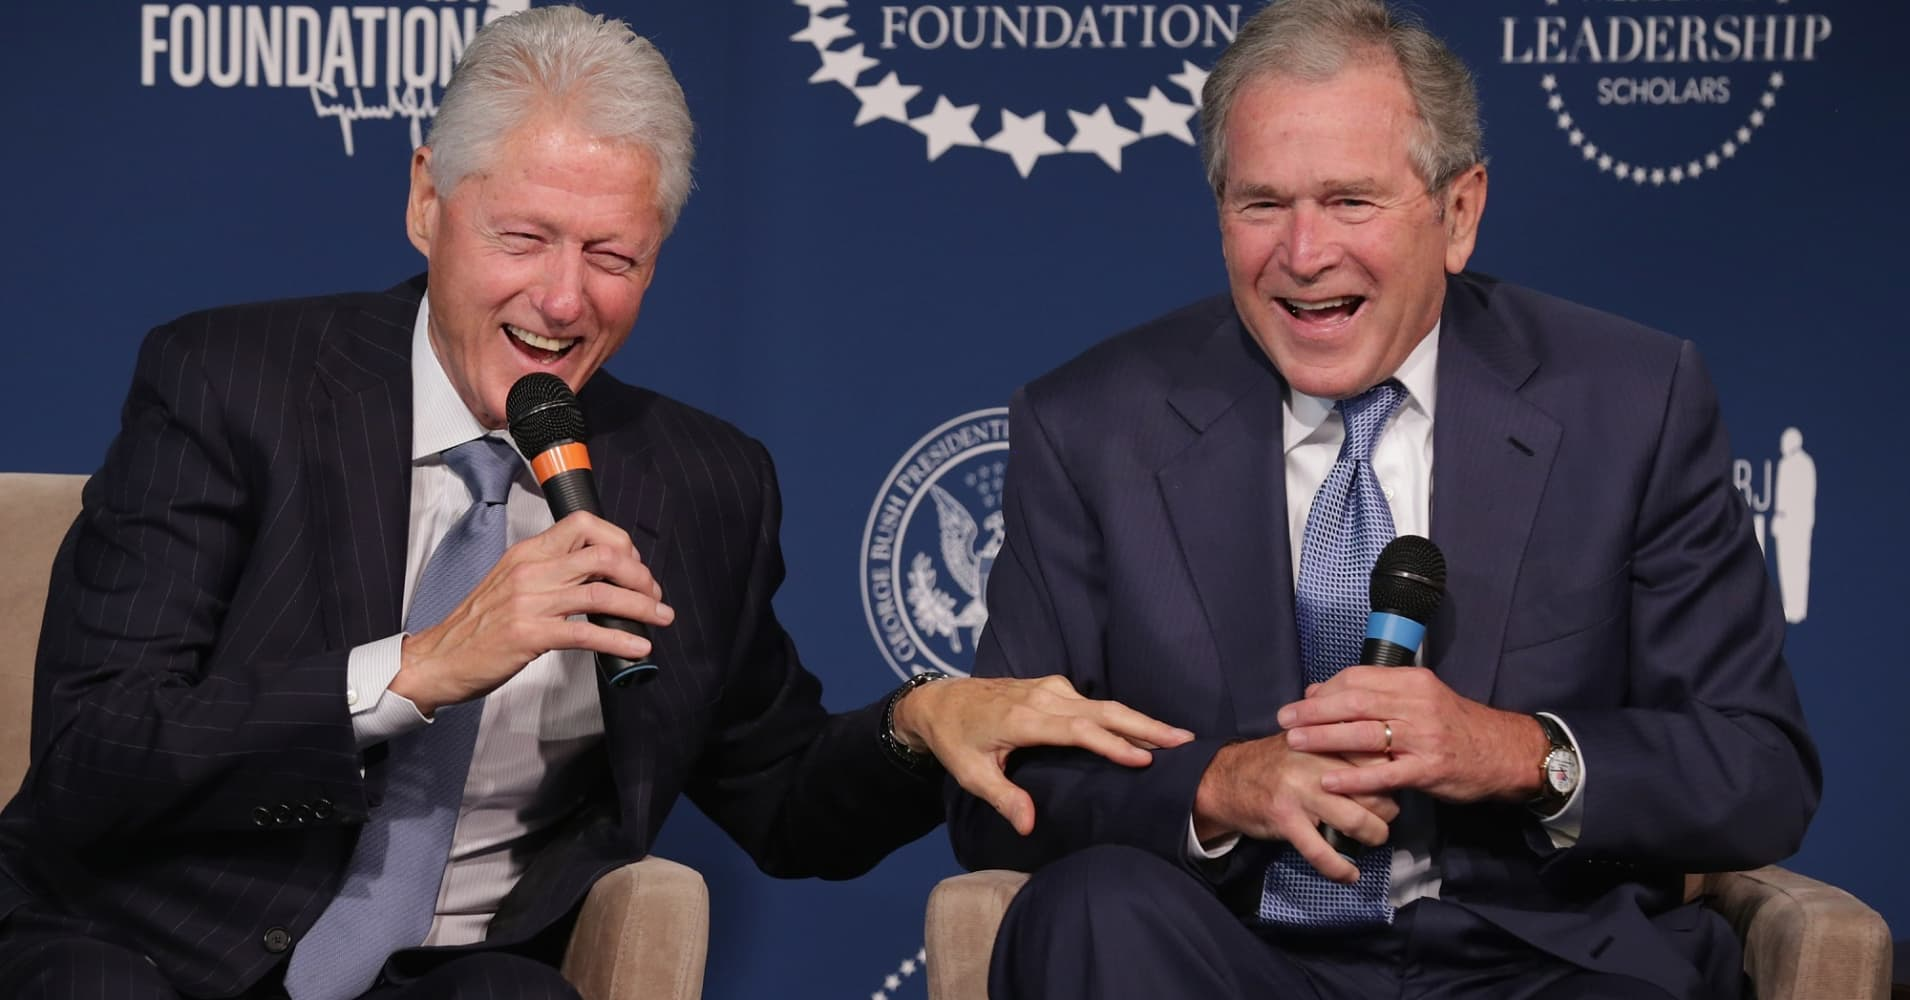 Former U.S. presidents Bill Clinton and George W. Bush at an event launching the Presidential Leadership Scholars program in 2014.